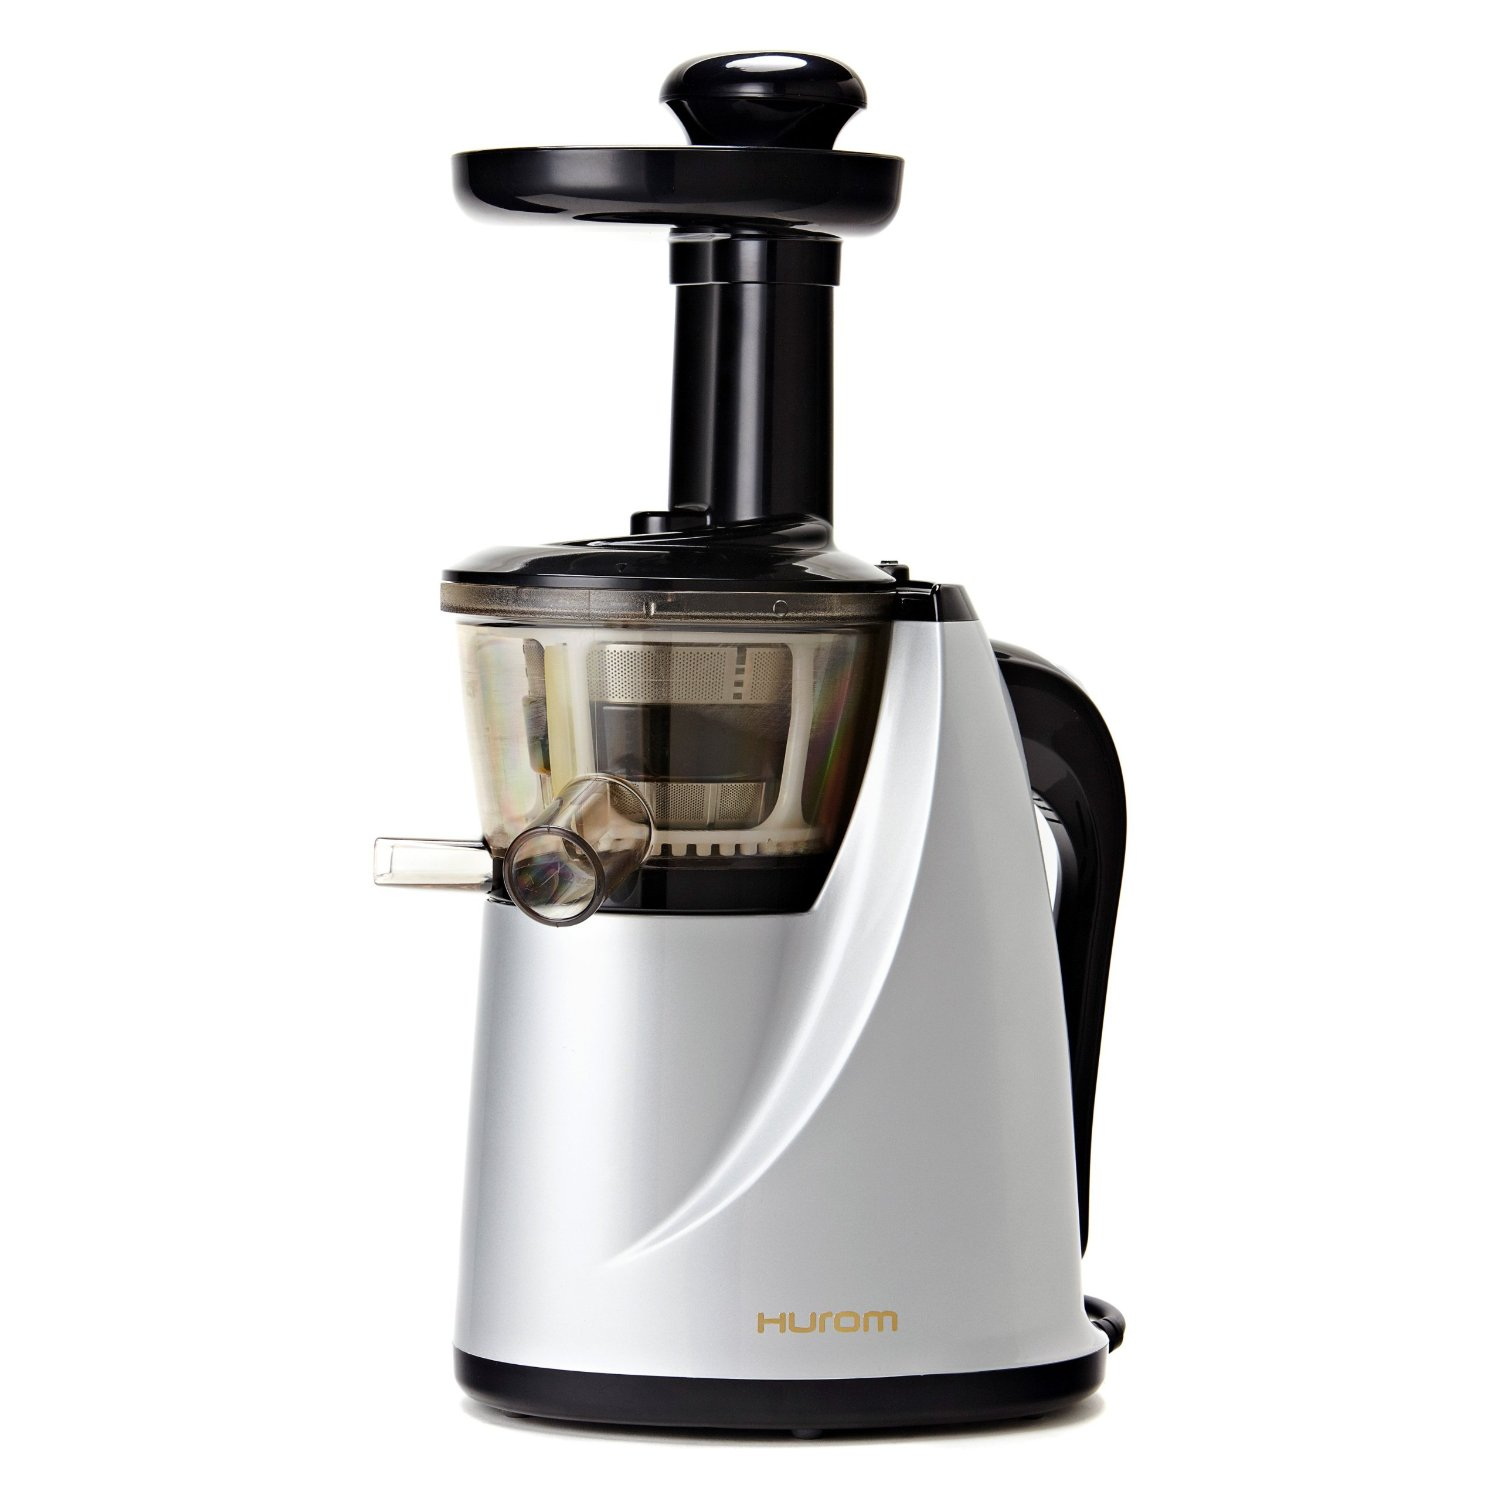 Hurom Slow Juicer Penang : Hurom HU-100 Masticating Slow Juicer Review - Best Cold Press Juicers